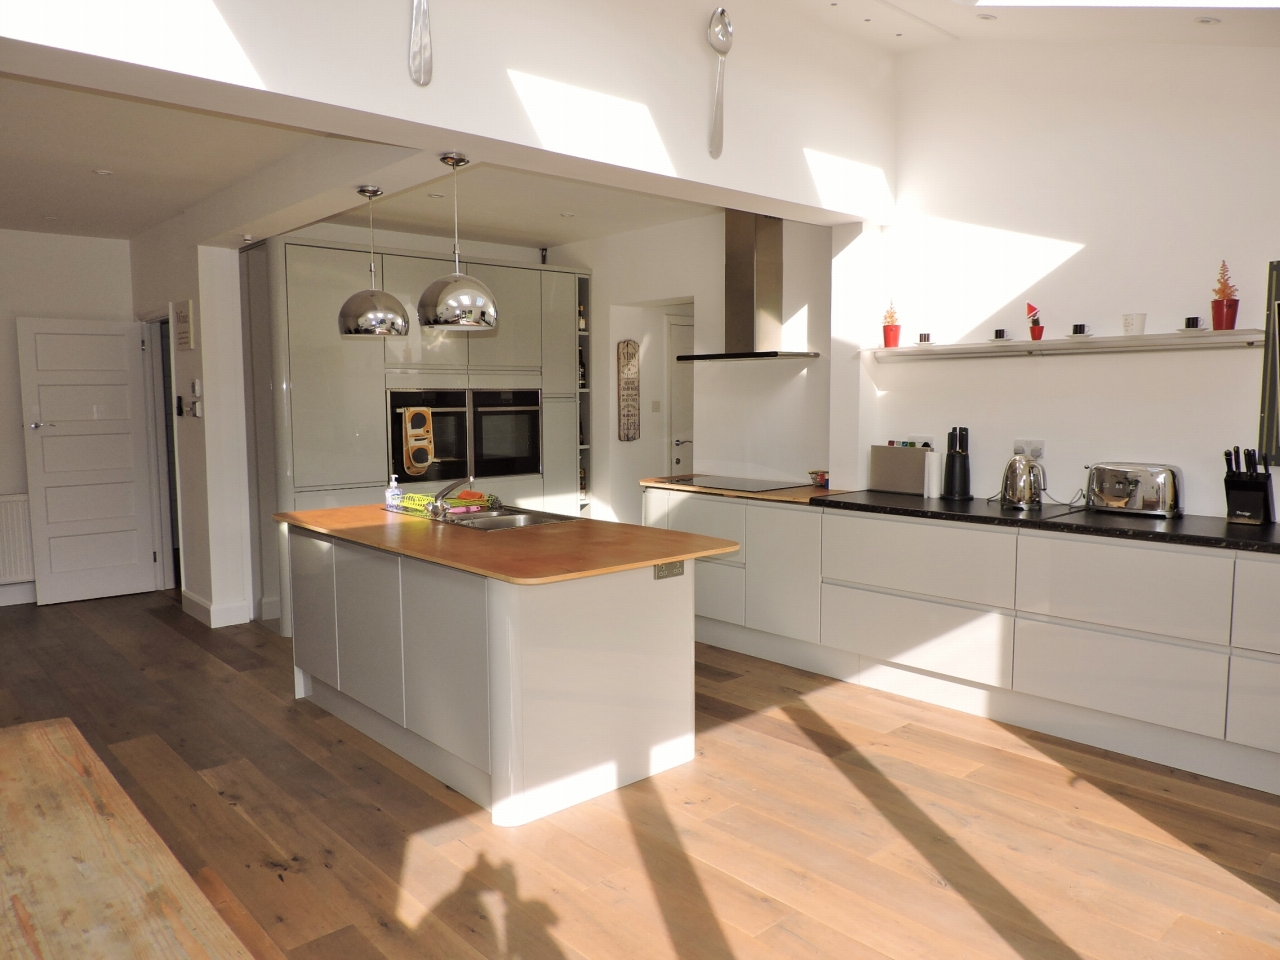 3 bedroom semi-detached house SSTC in New Malden - Photograph 6